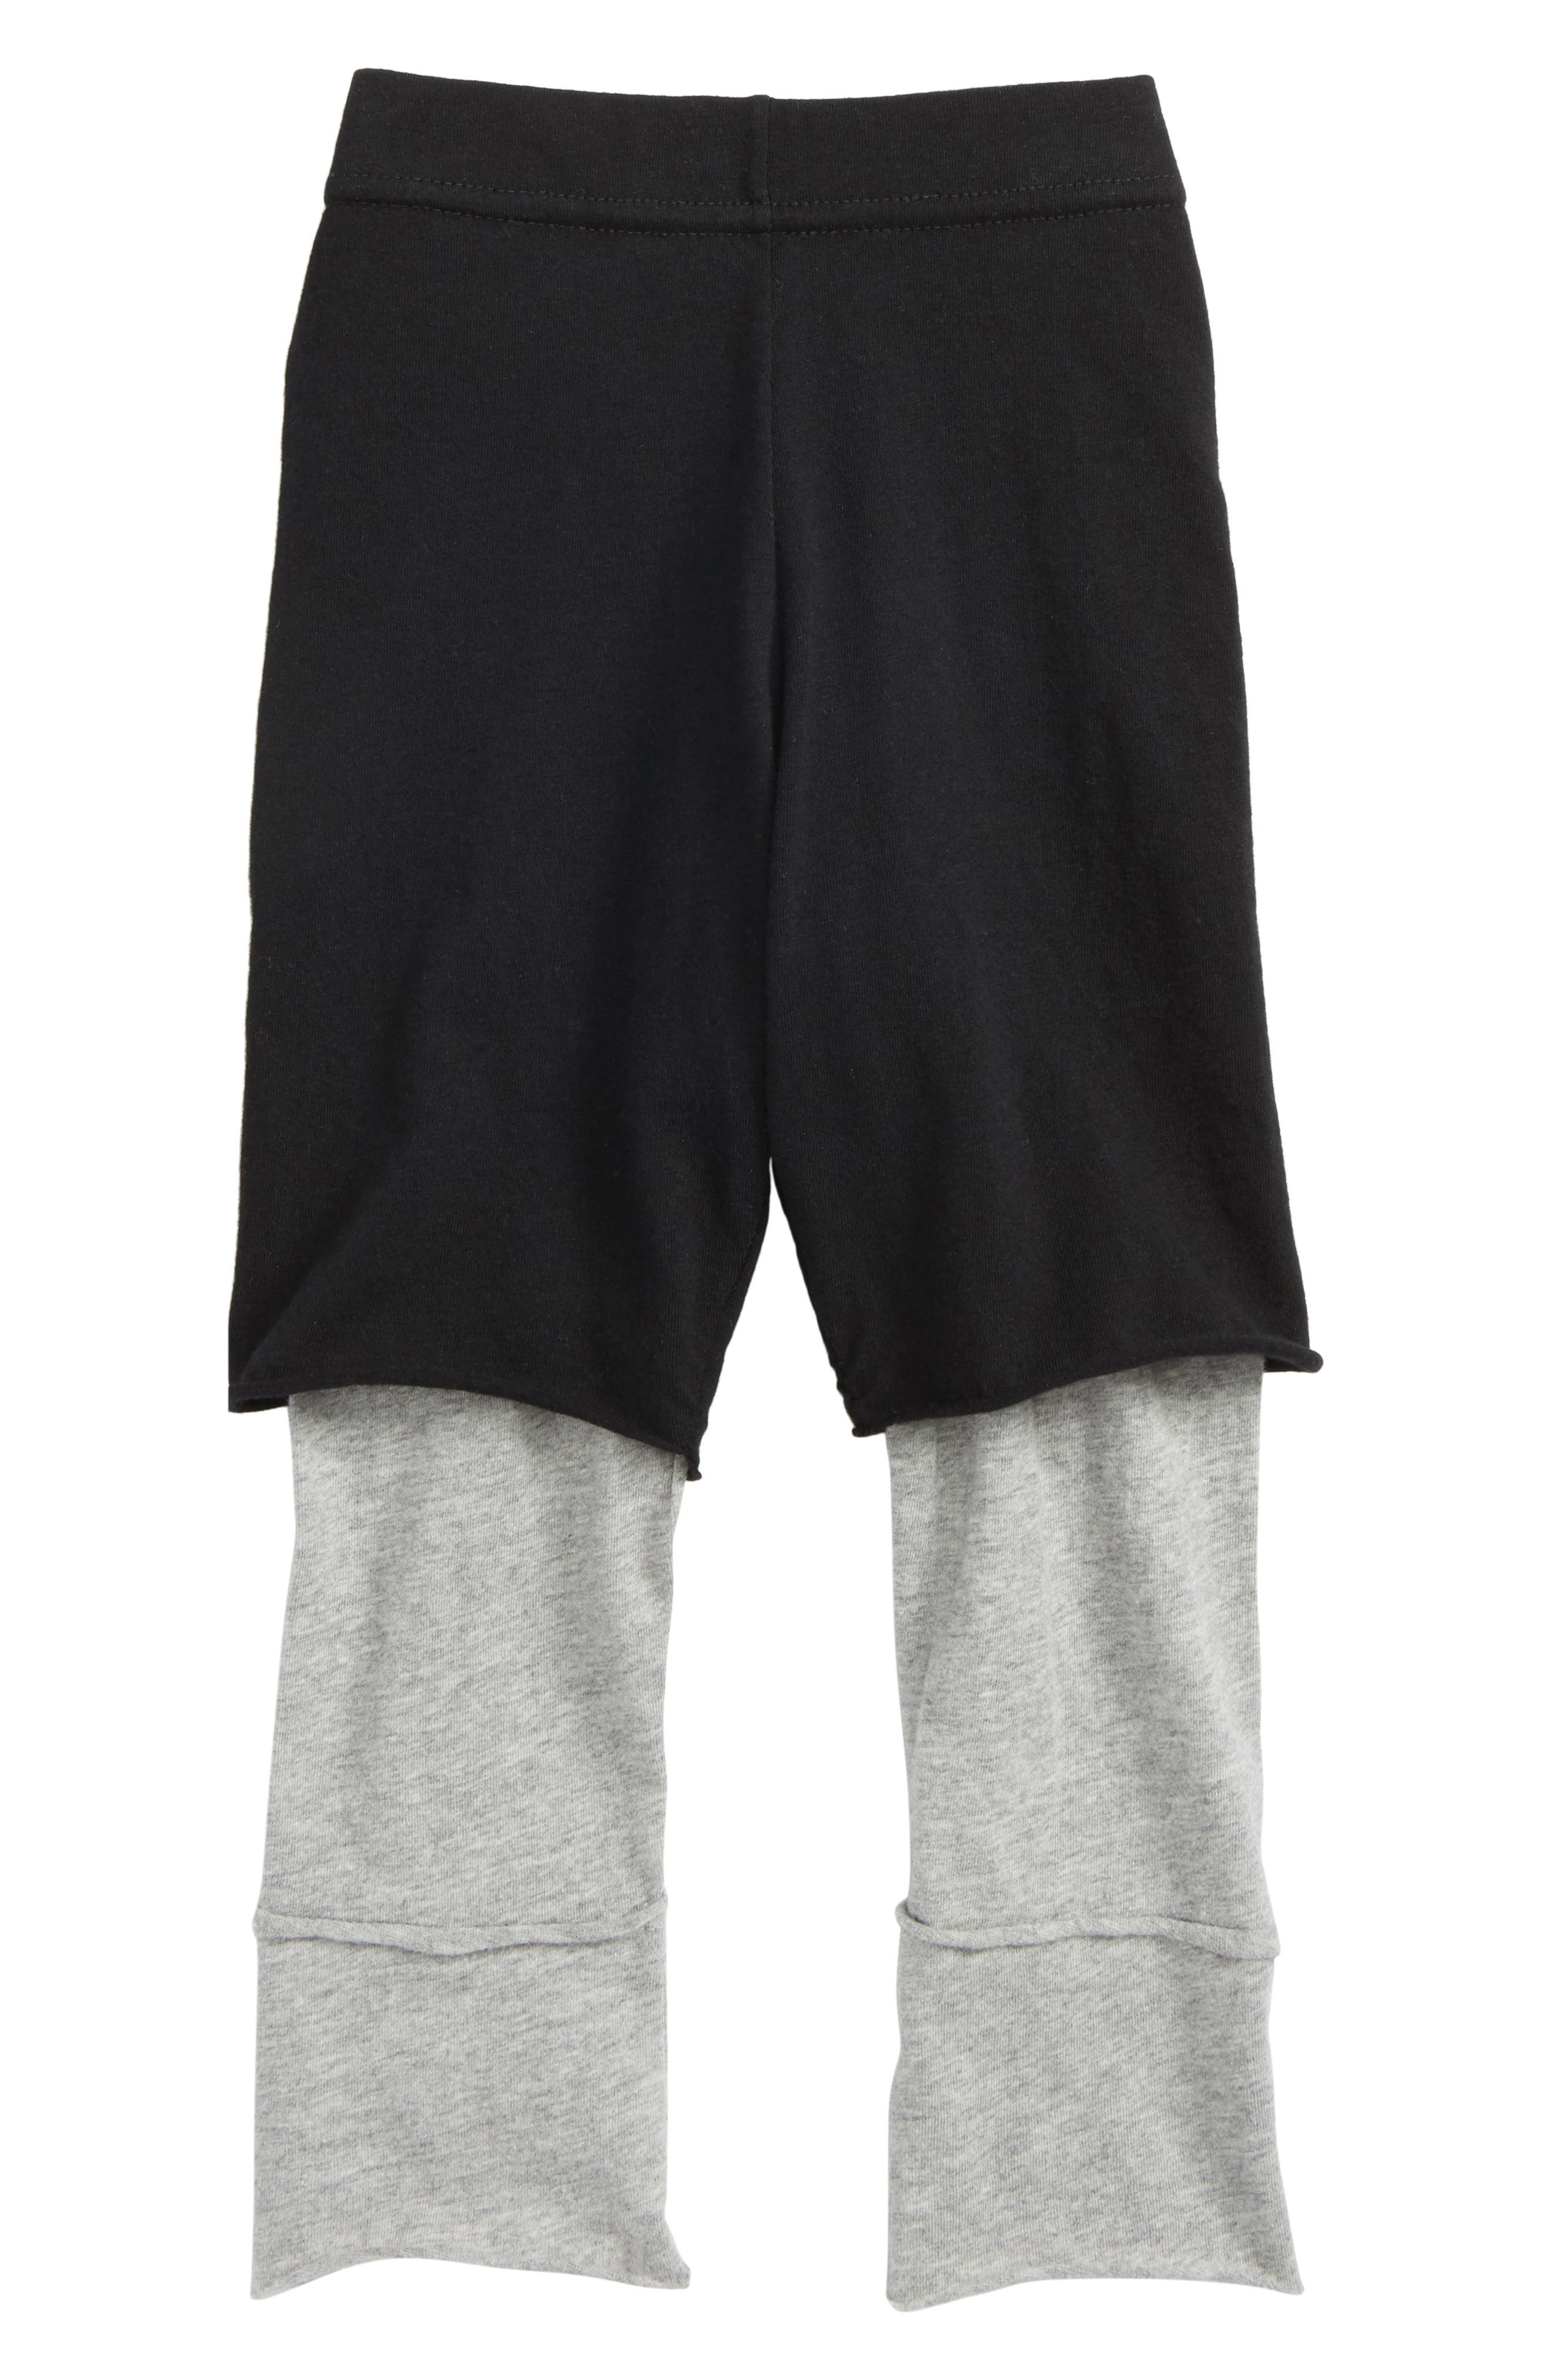 One on One Layered Pants,                         Main,                         color, Black/ Heather Grey